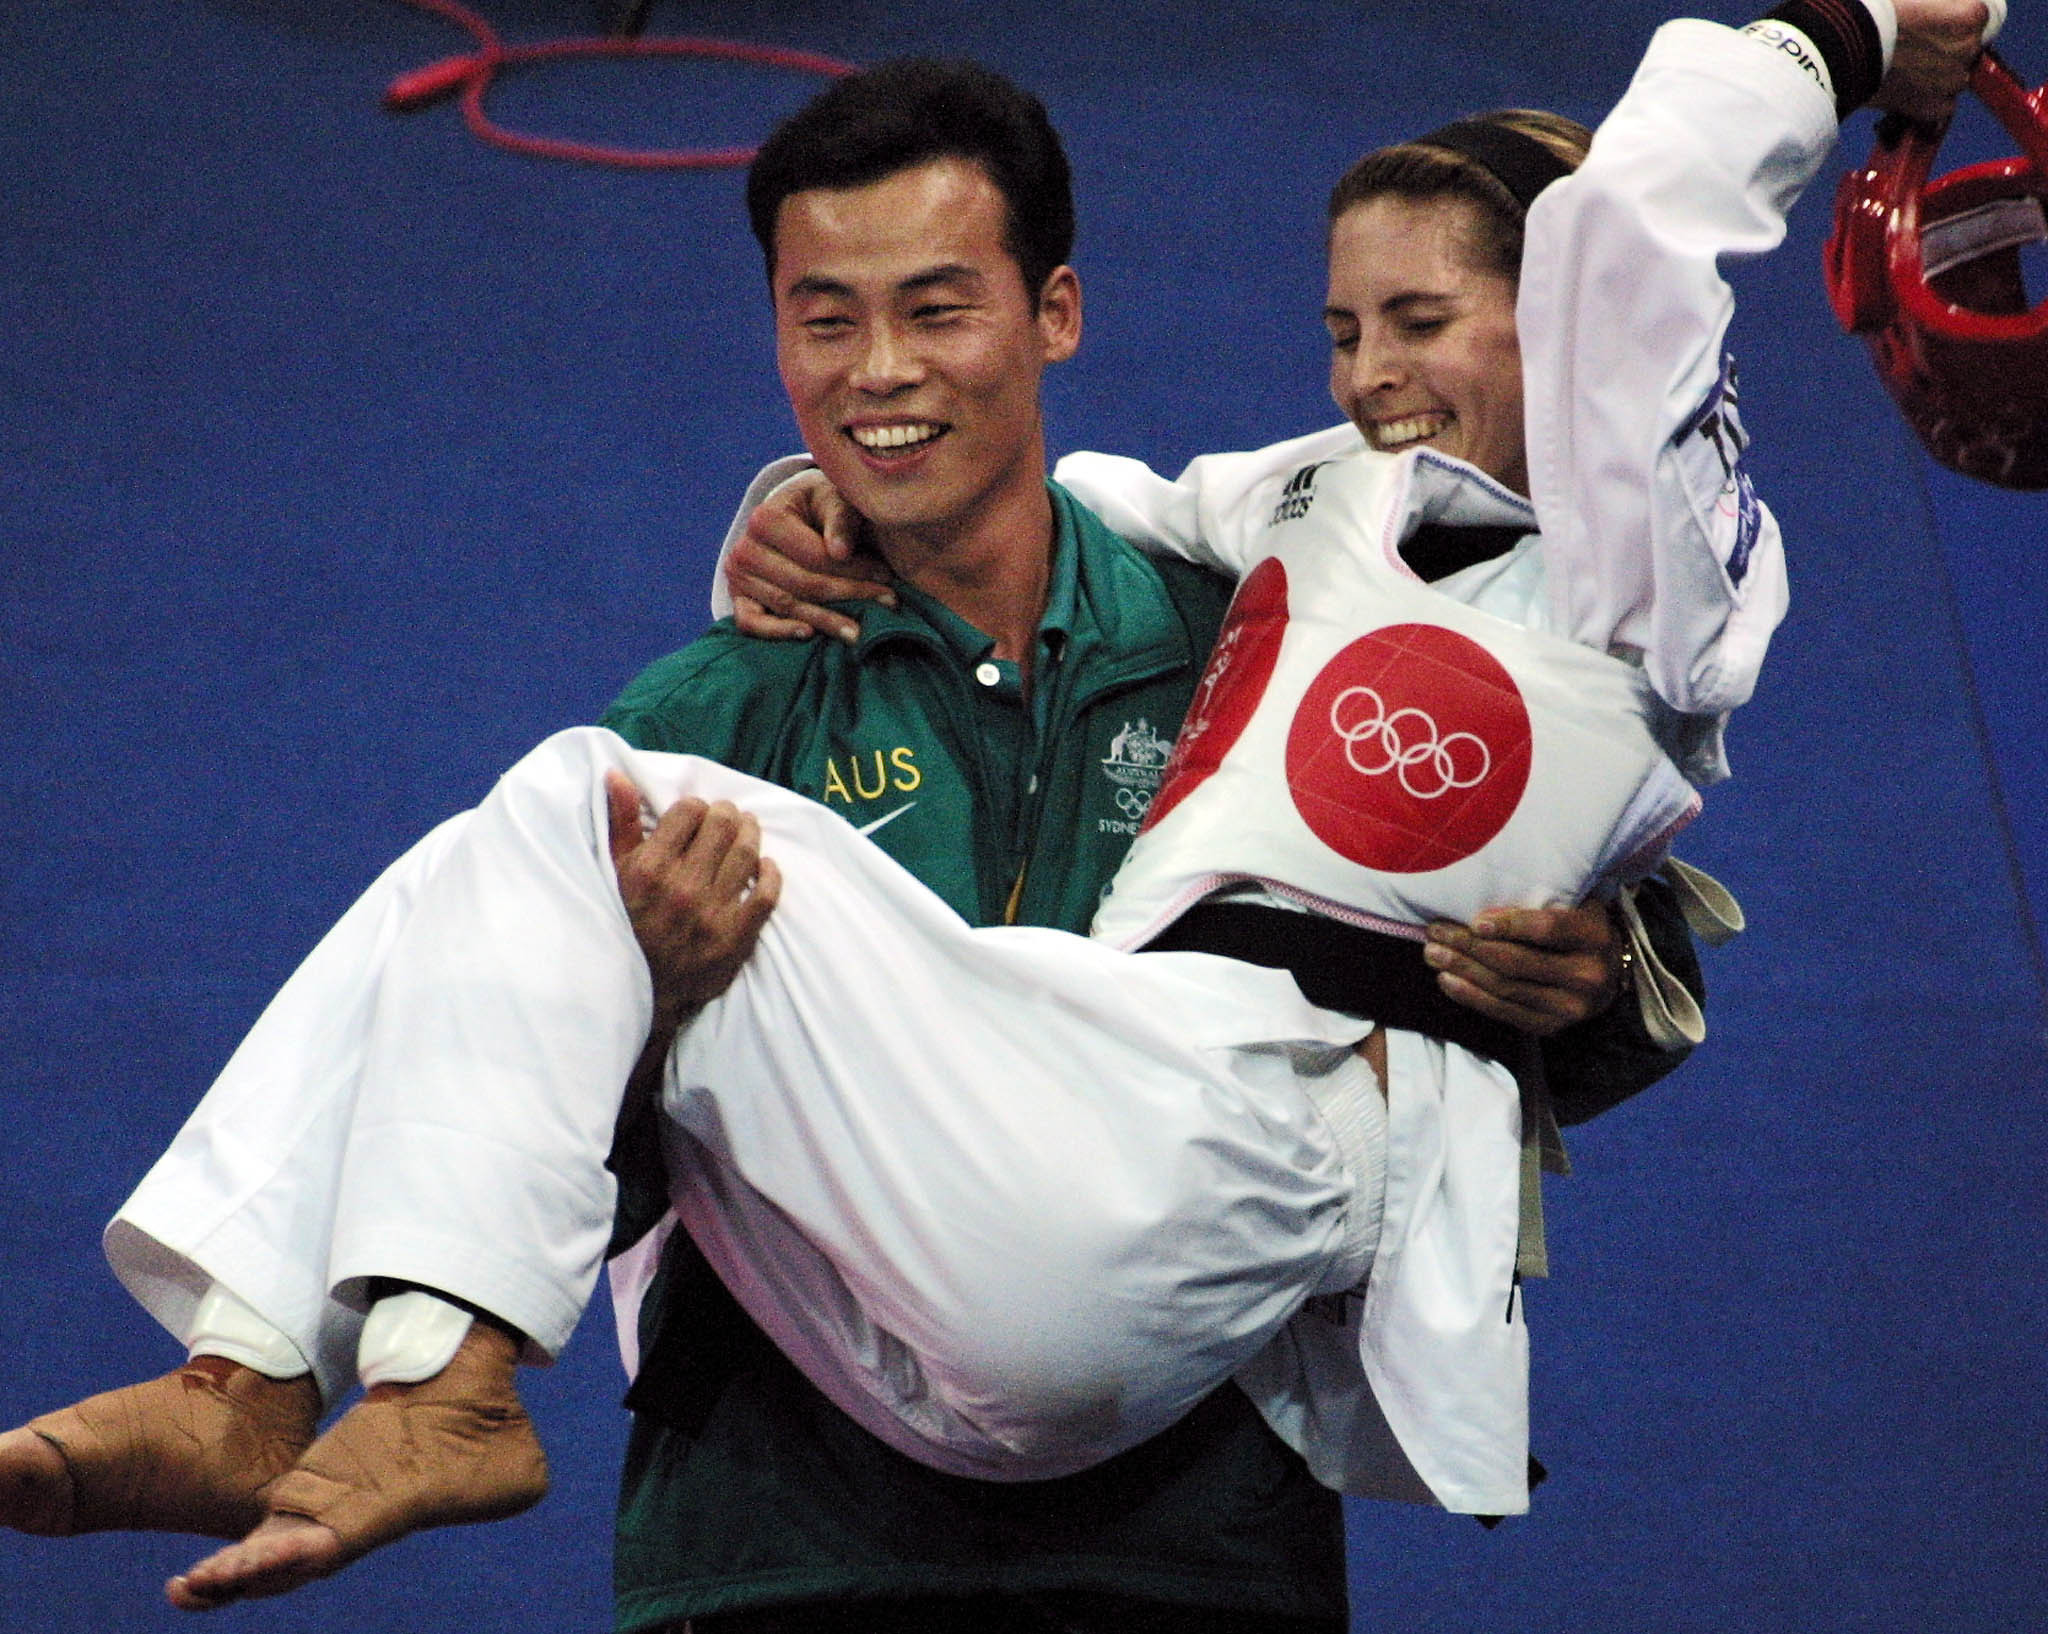 Lauren Burns was the last Australian to win gold in taekwondo following her success at Sydney 2000 ©Getty Images